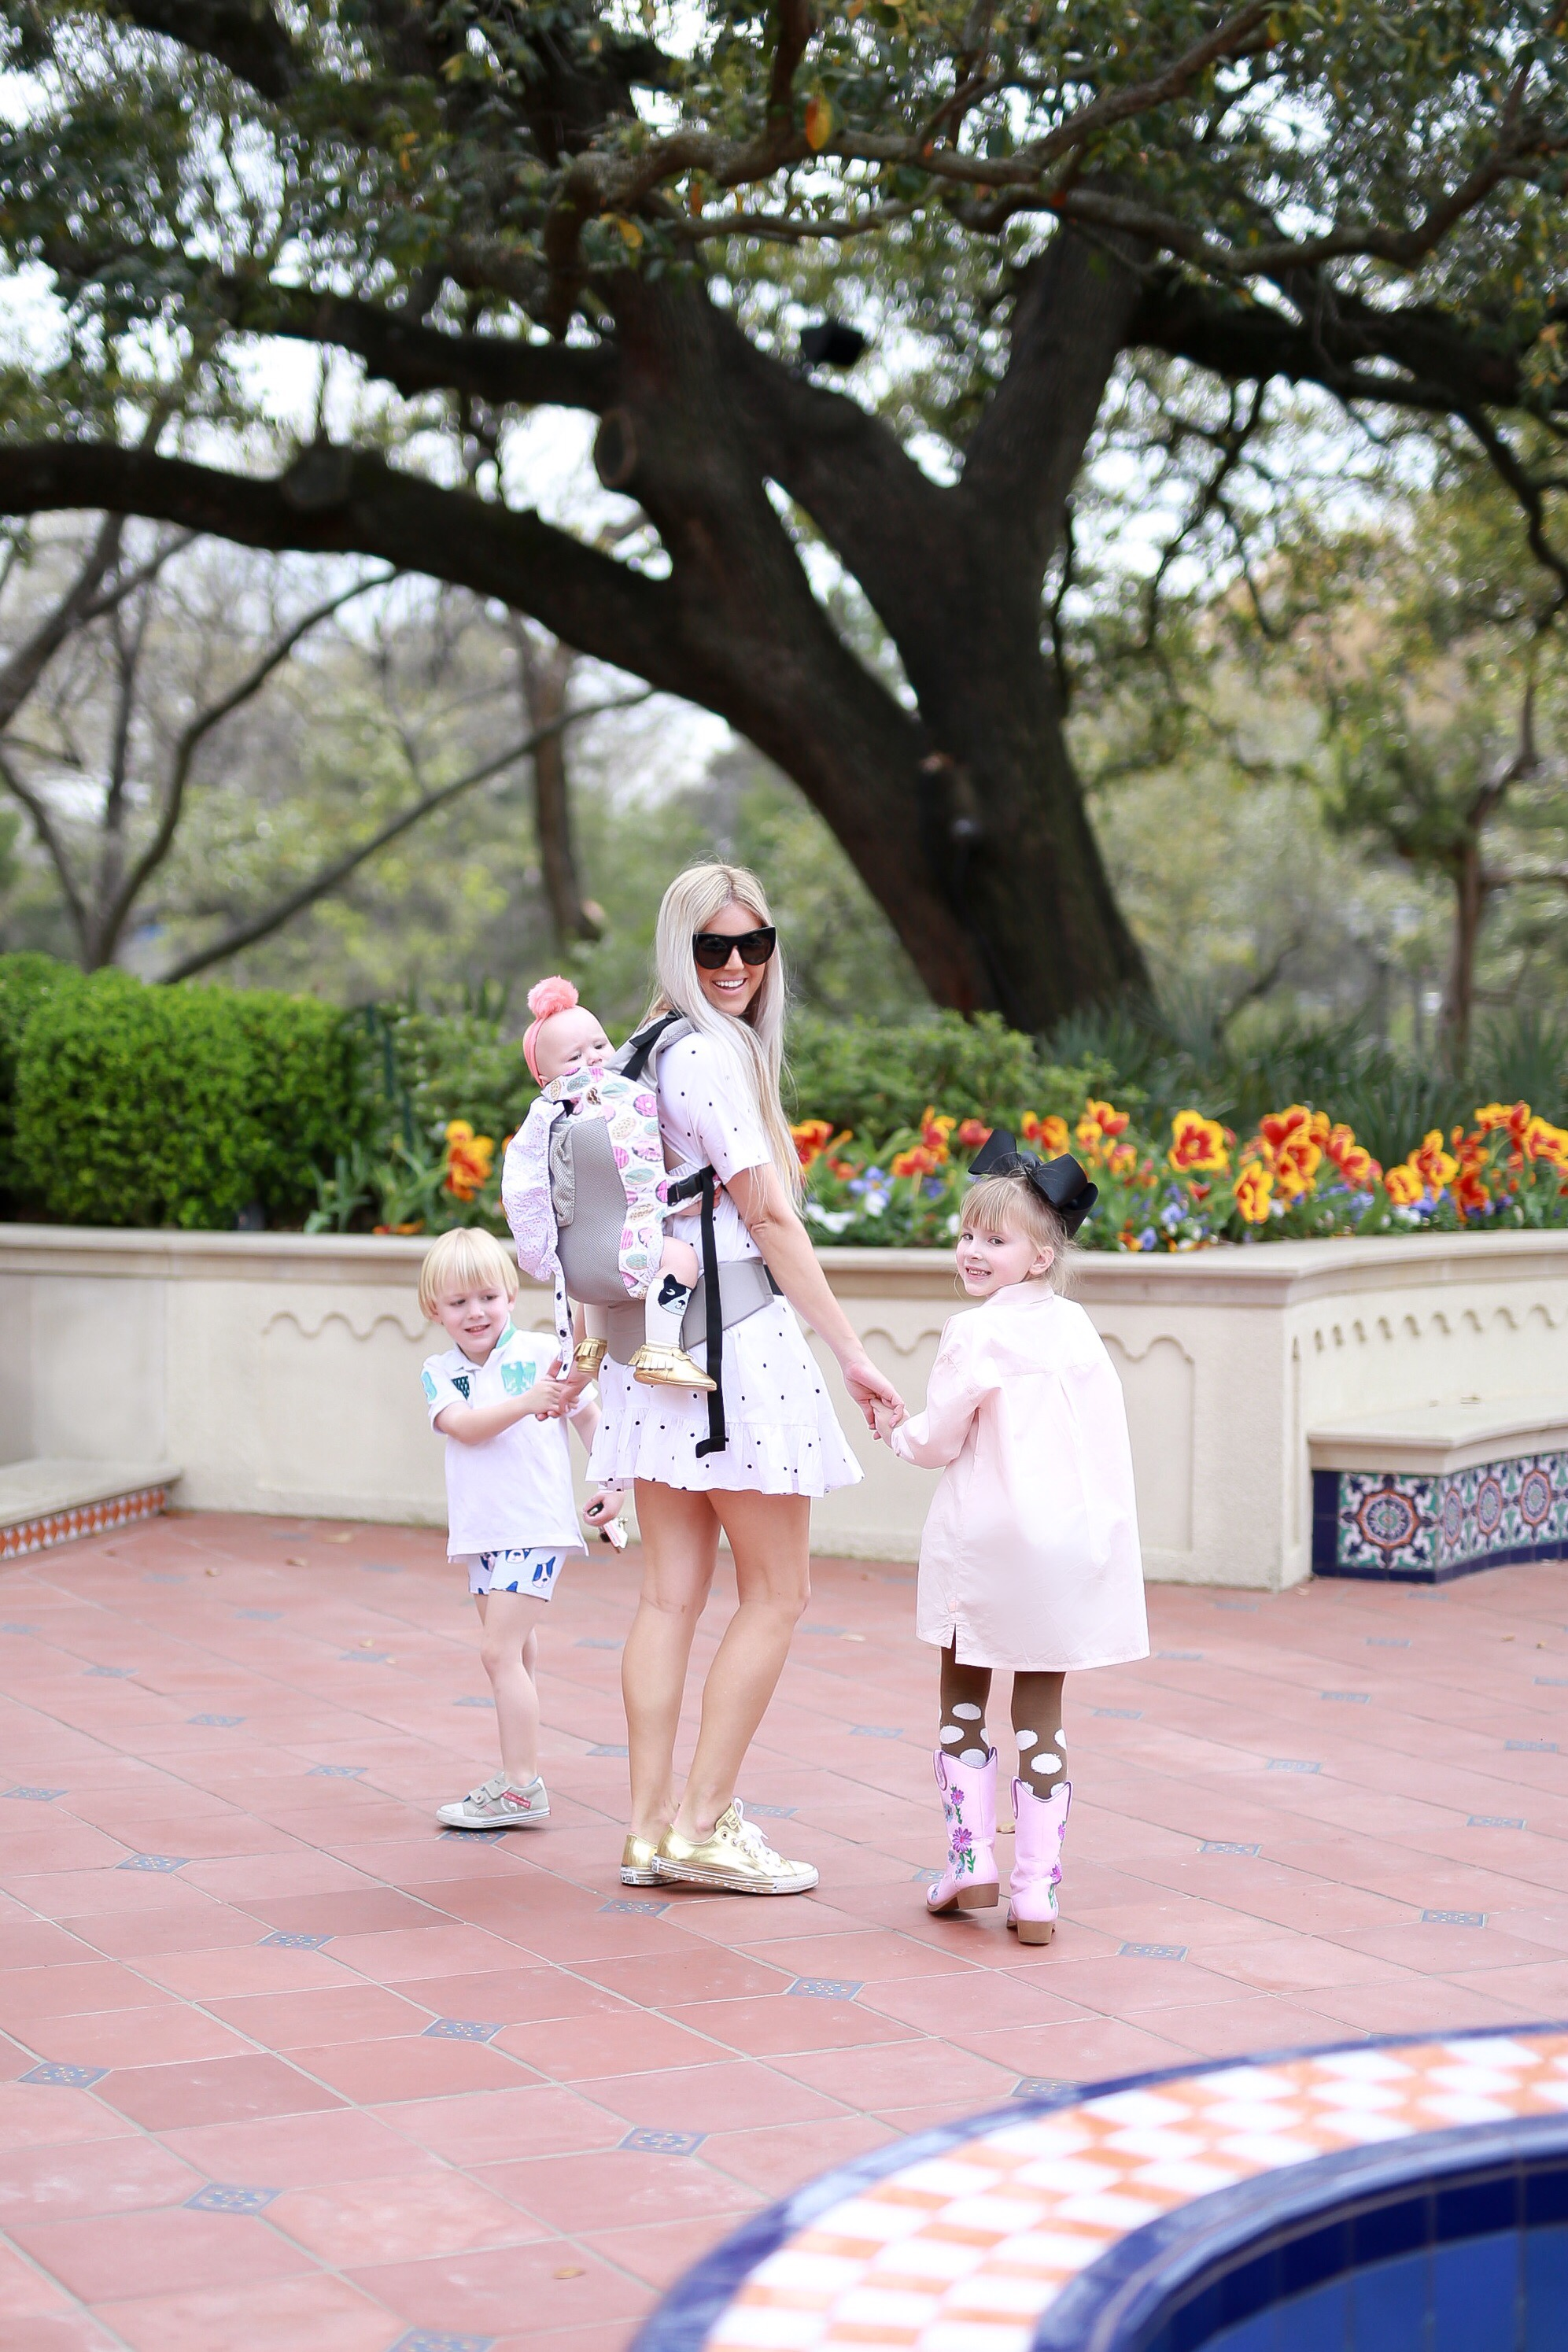 Stephany Bowman wearing a white polka dot, short smocked dress from ZARA. Gold sneakers from CONVERSE, and Black cat eye sunglasses from HENRI BENDEL. Annabelle, Alexander and Angelina Bomwan wearing outfits from Children's Boutique OLLIE AND MAE